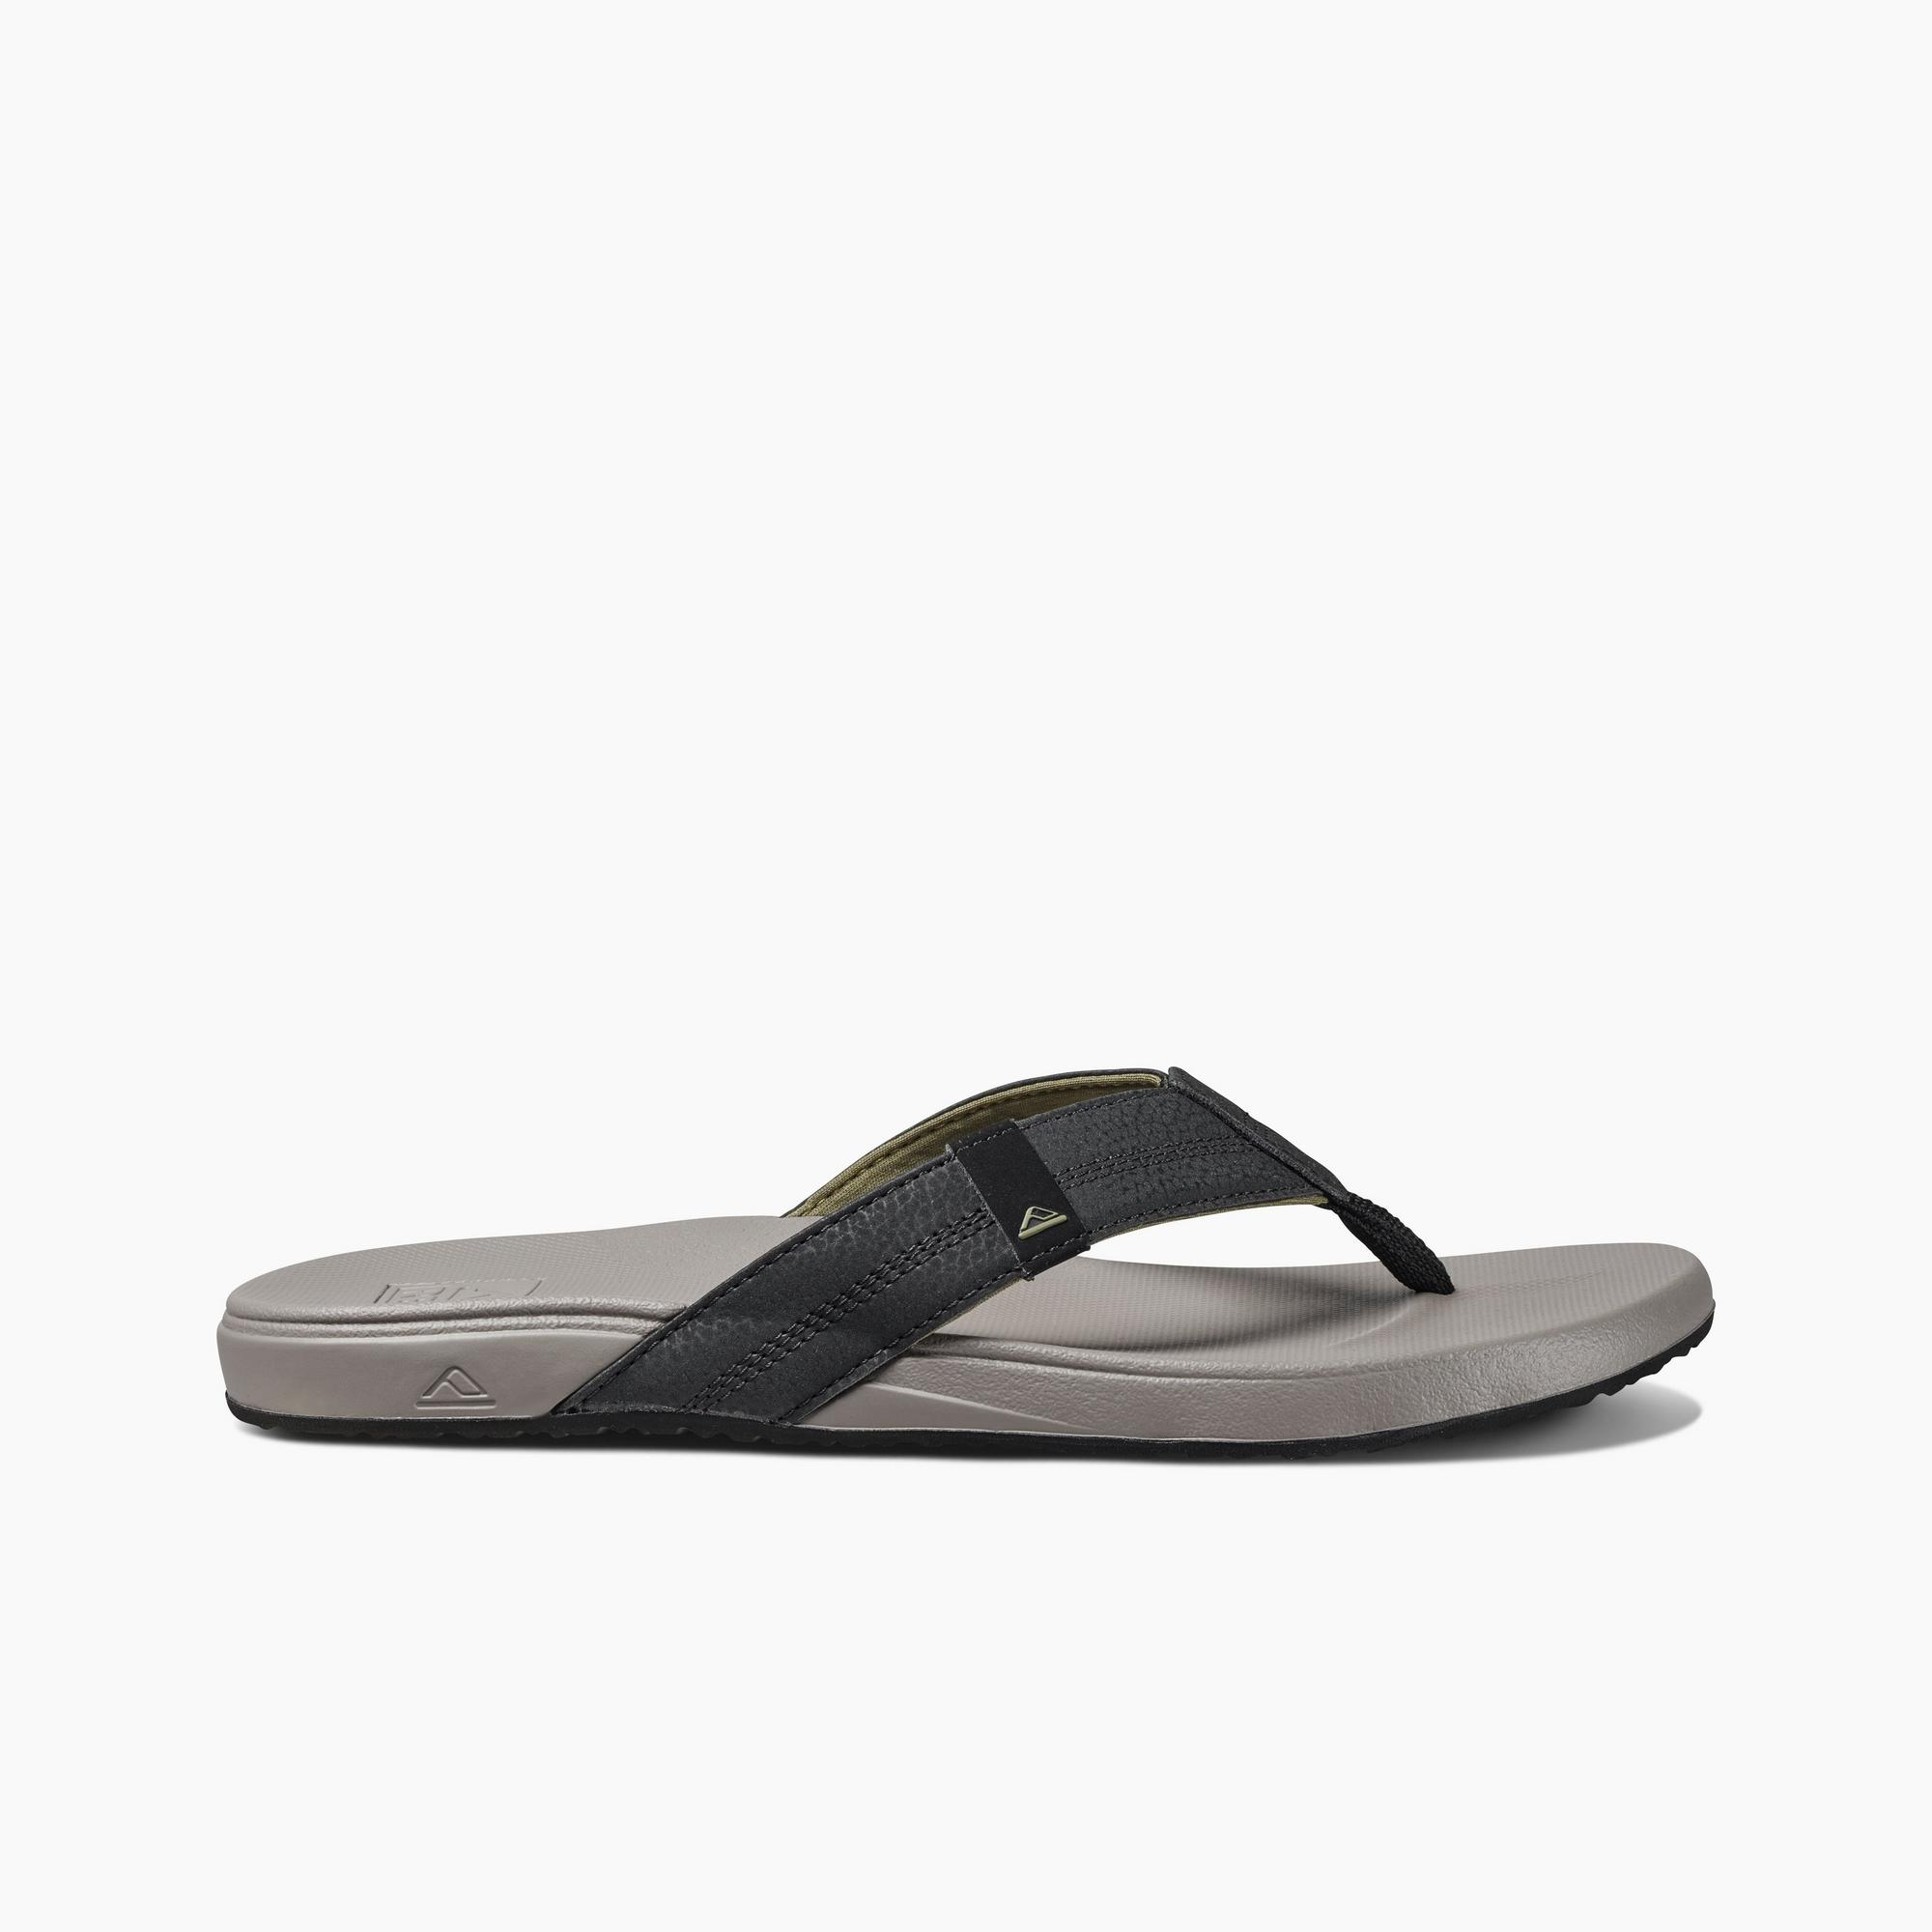 Men's Cushion Bounce Phantom Flip-Flop Sandal - Light Grey/Black